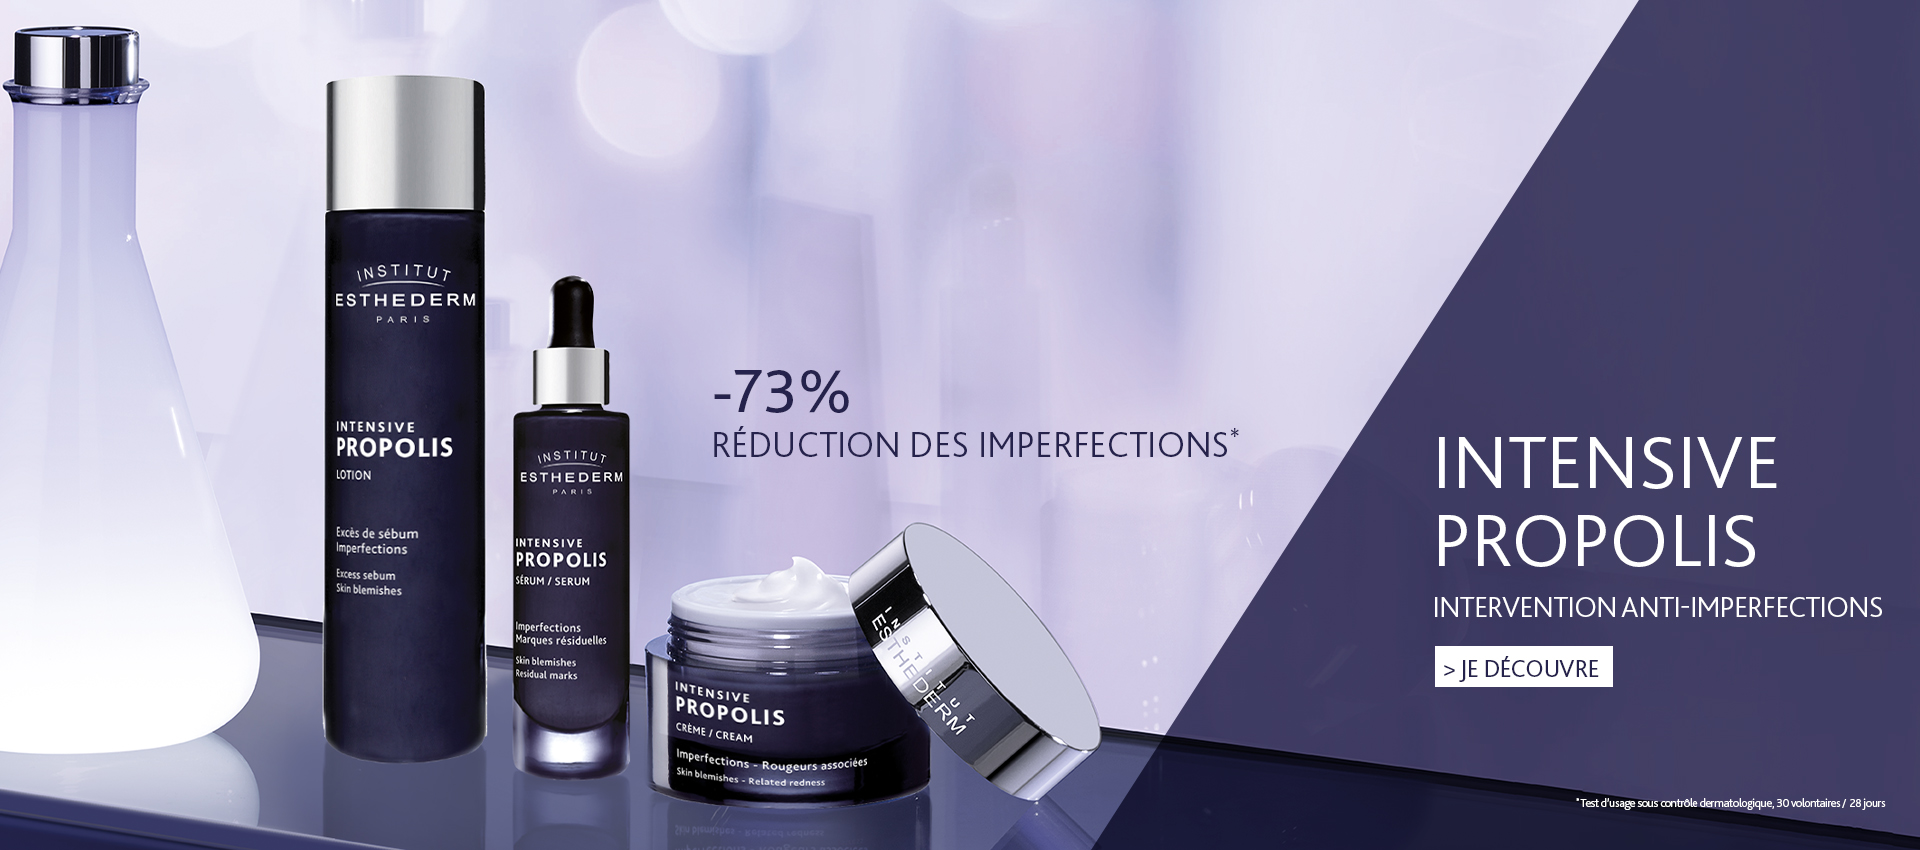 Cure anti-imperfections Propolis